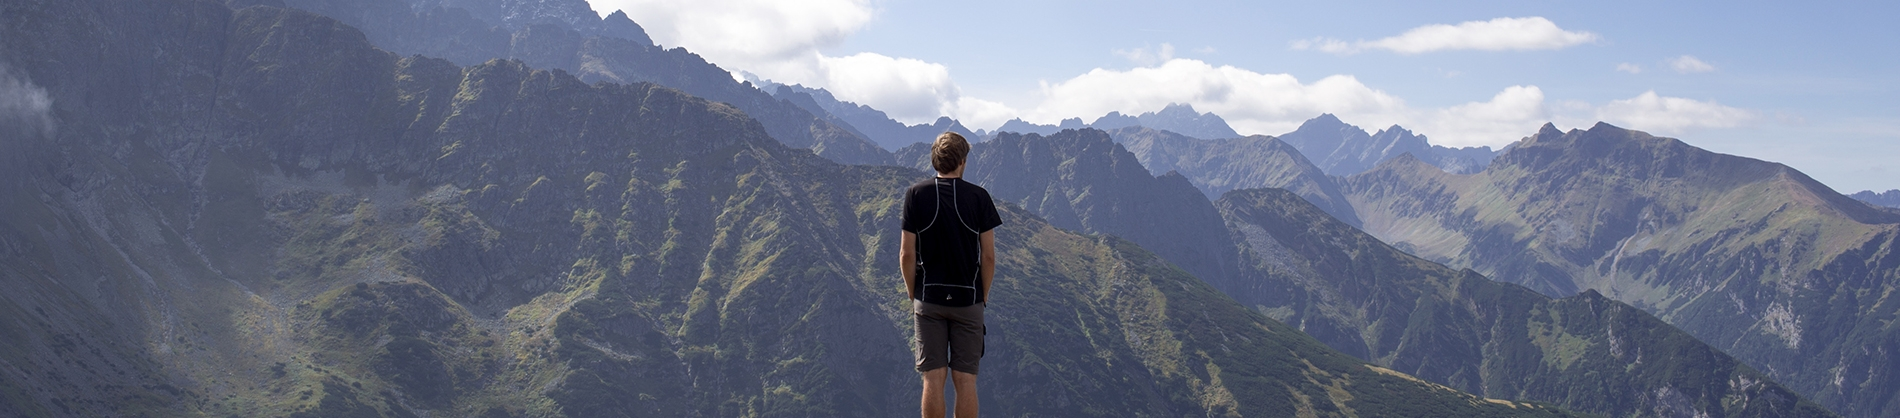 A man looking out over a mountain view